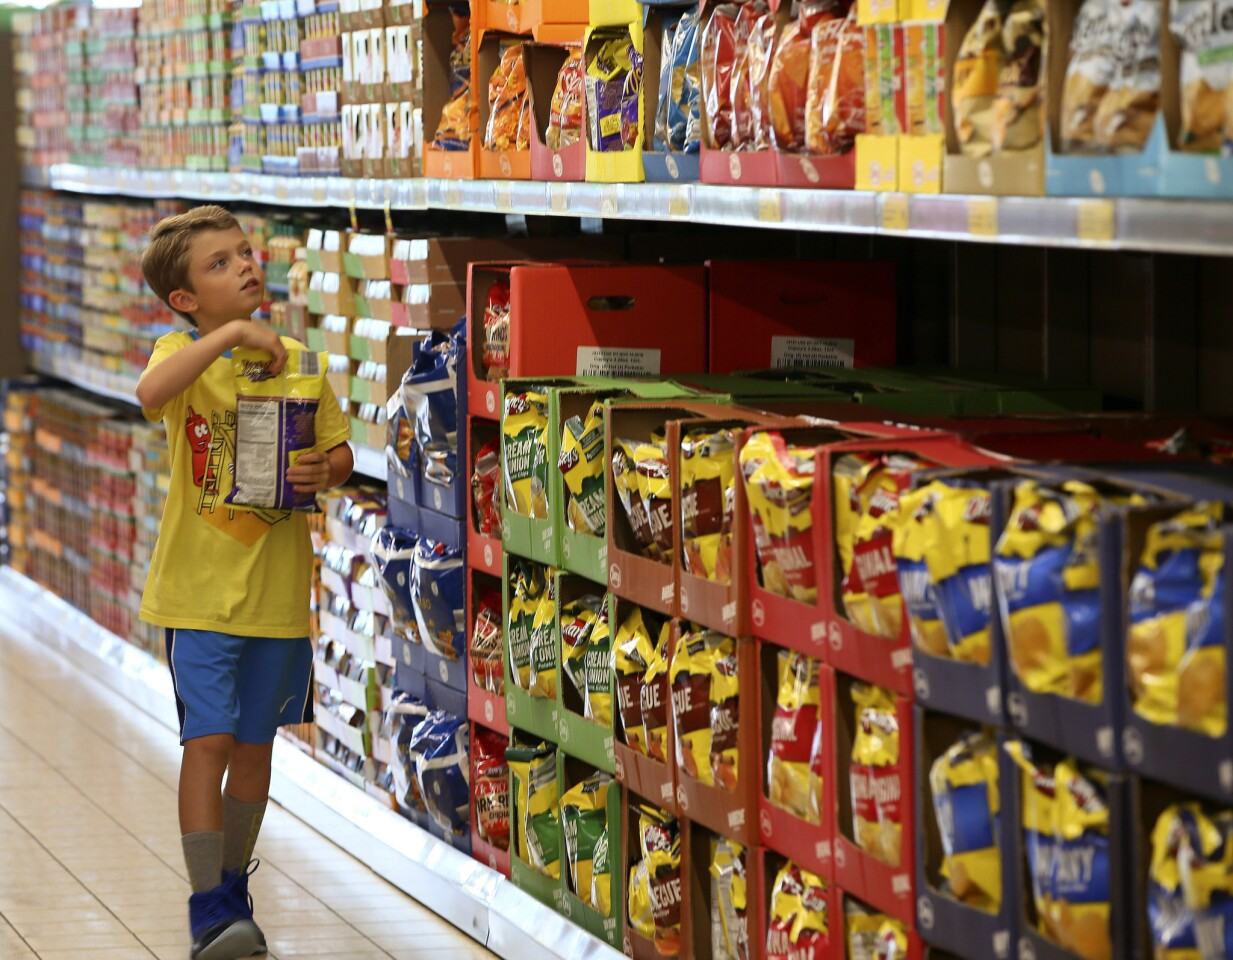 Ethan Bauer, 9, of Geneva, picks out chips at the Aldi Store in St. Charles on August 8, 2018.